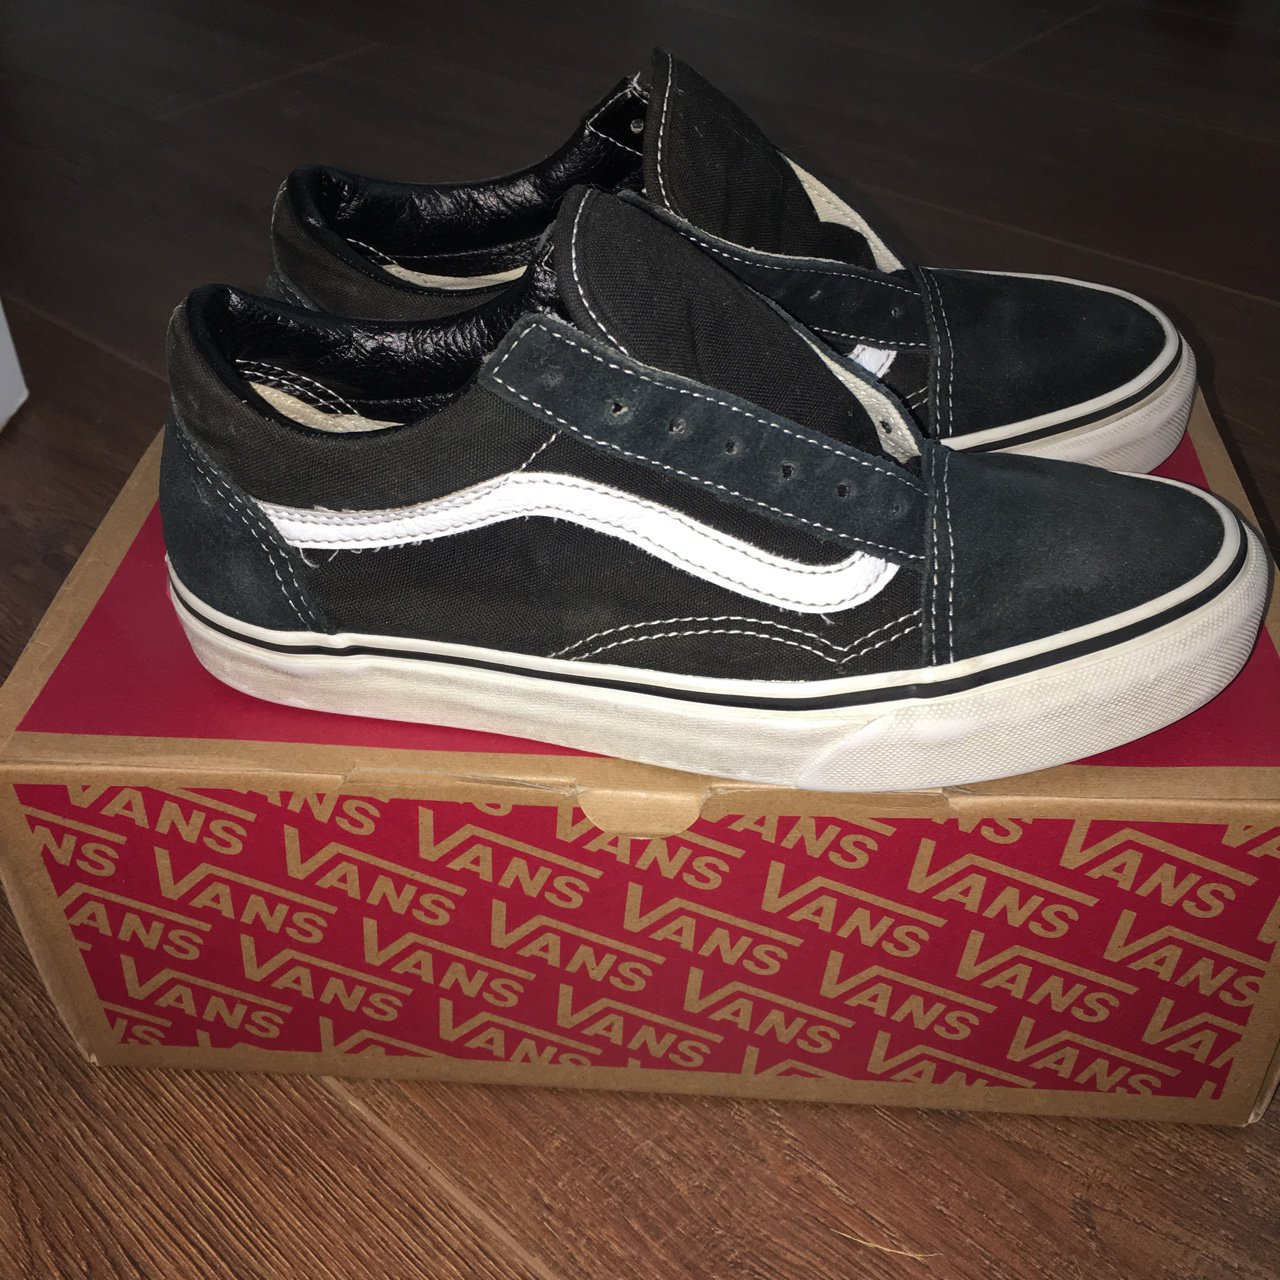 33d014753e Old Skool Vans - size 5.5 in men s   7 in women s. - good I - Depop